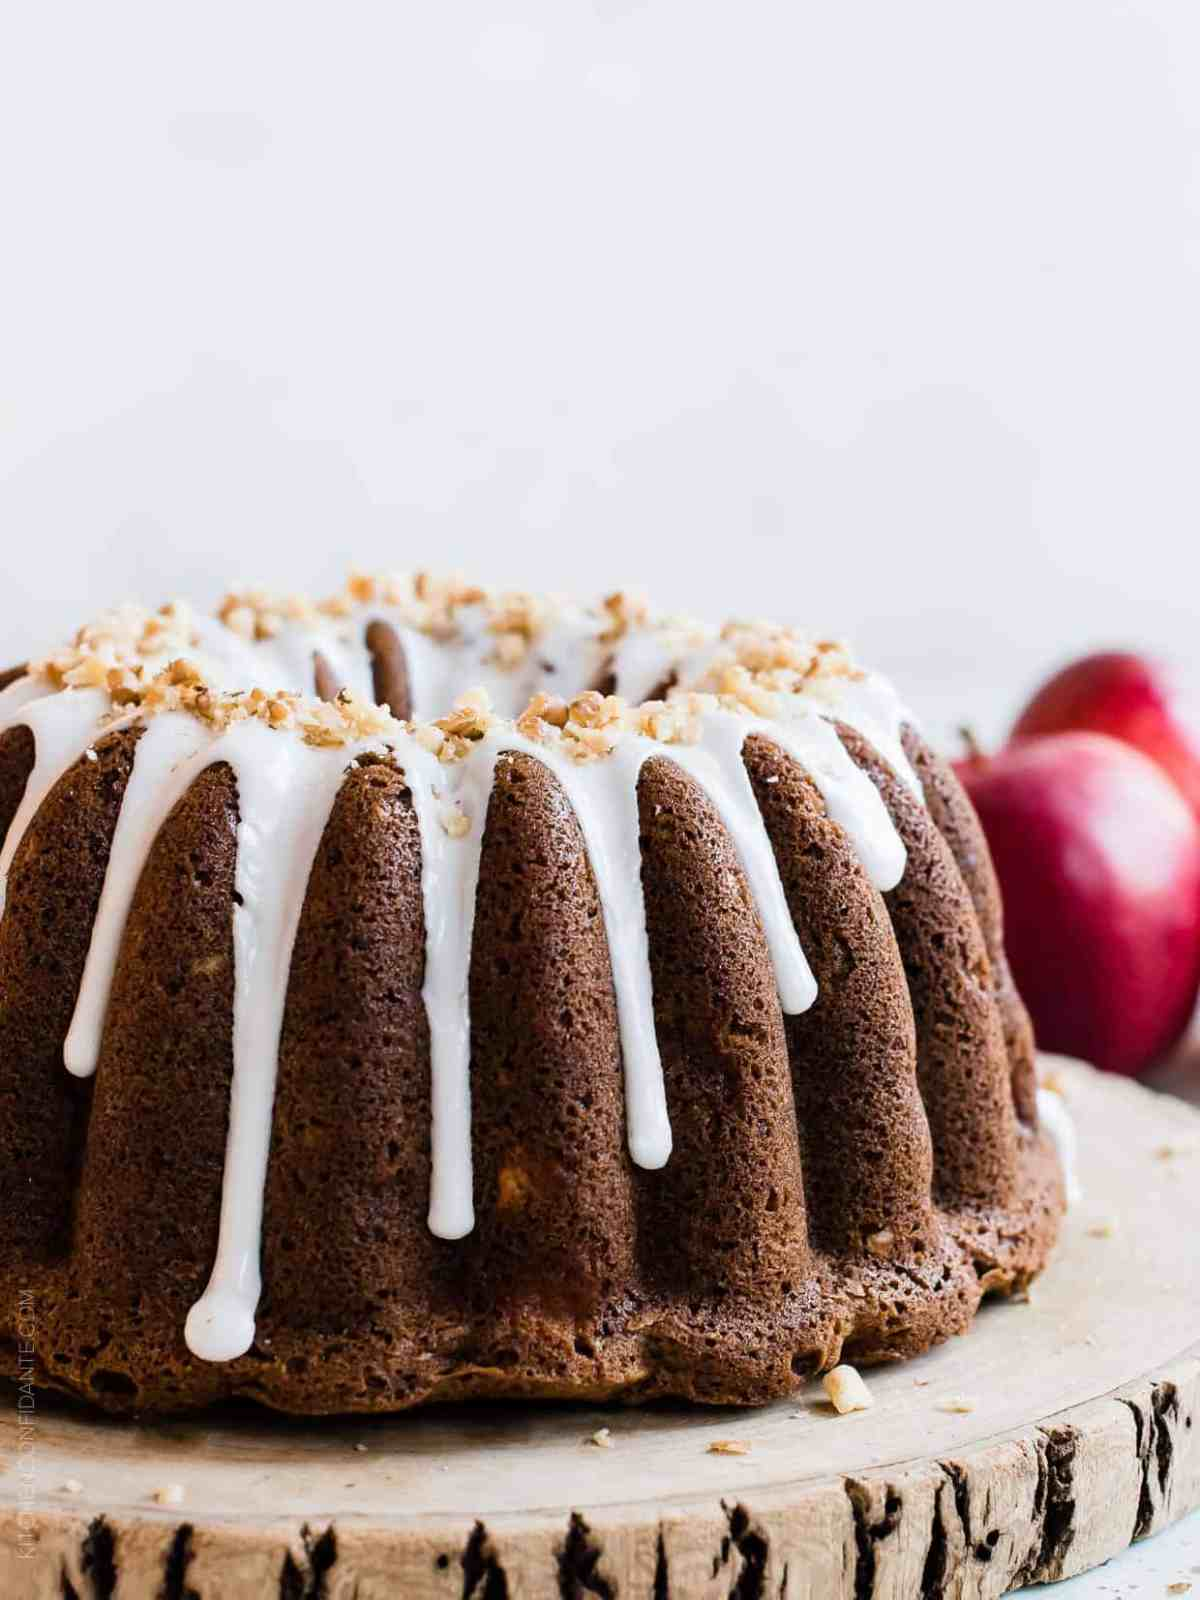 Apple Walnut Cake with apples in the background.